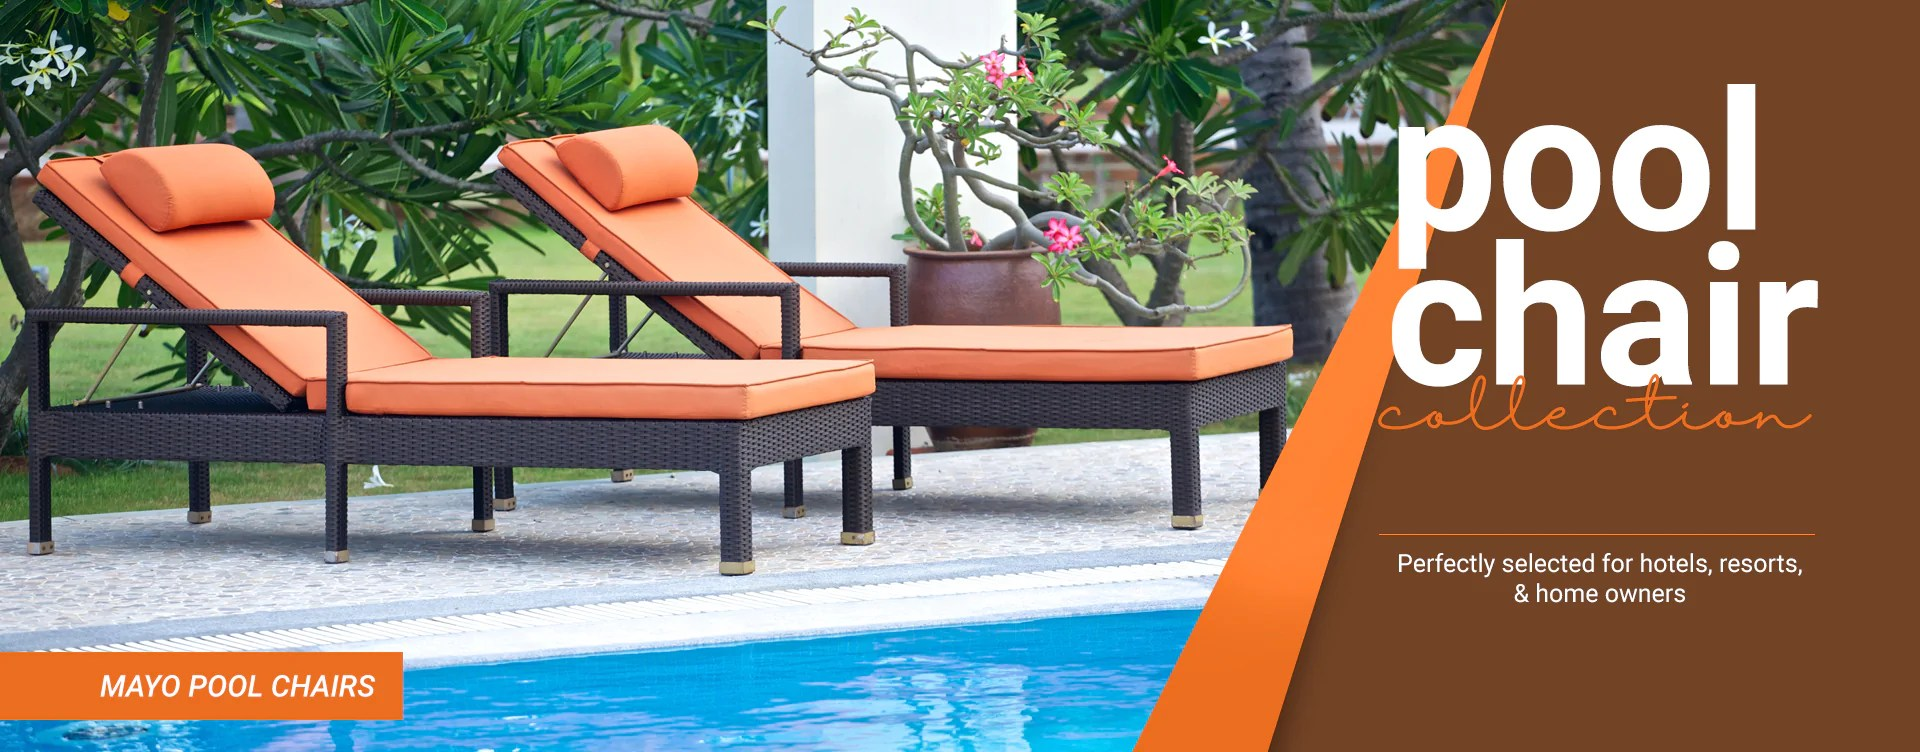 Outdoor Furniture India First Outdoor Furniture Online Store Buy Now Dreamlineoutdoorfurniture